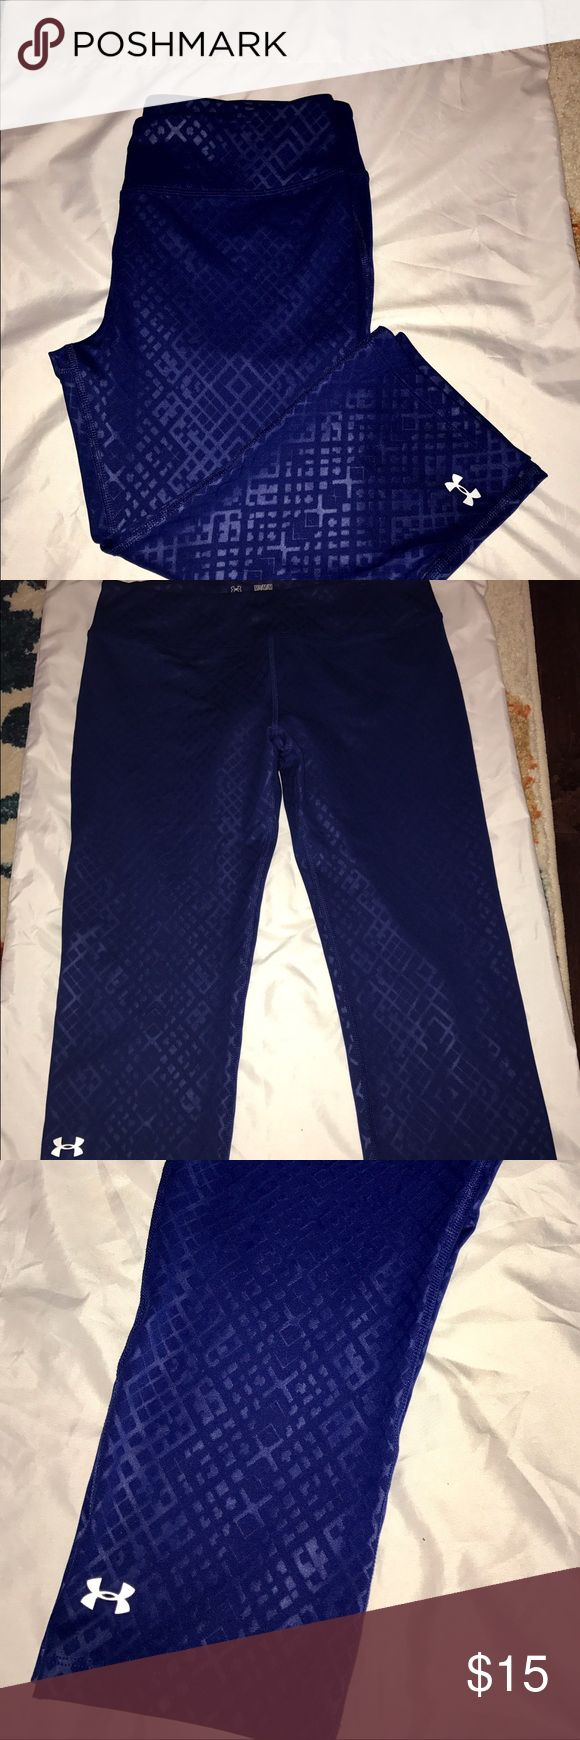 Womens Under Armour Training Capri Size M LIKE NEW Womens Under Armour Training Capri Size M LIKE NEW Blue Under Armour Pants Capris